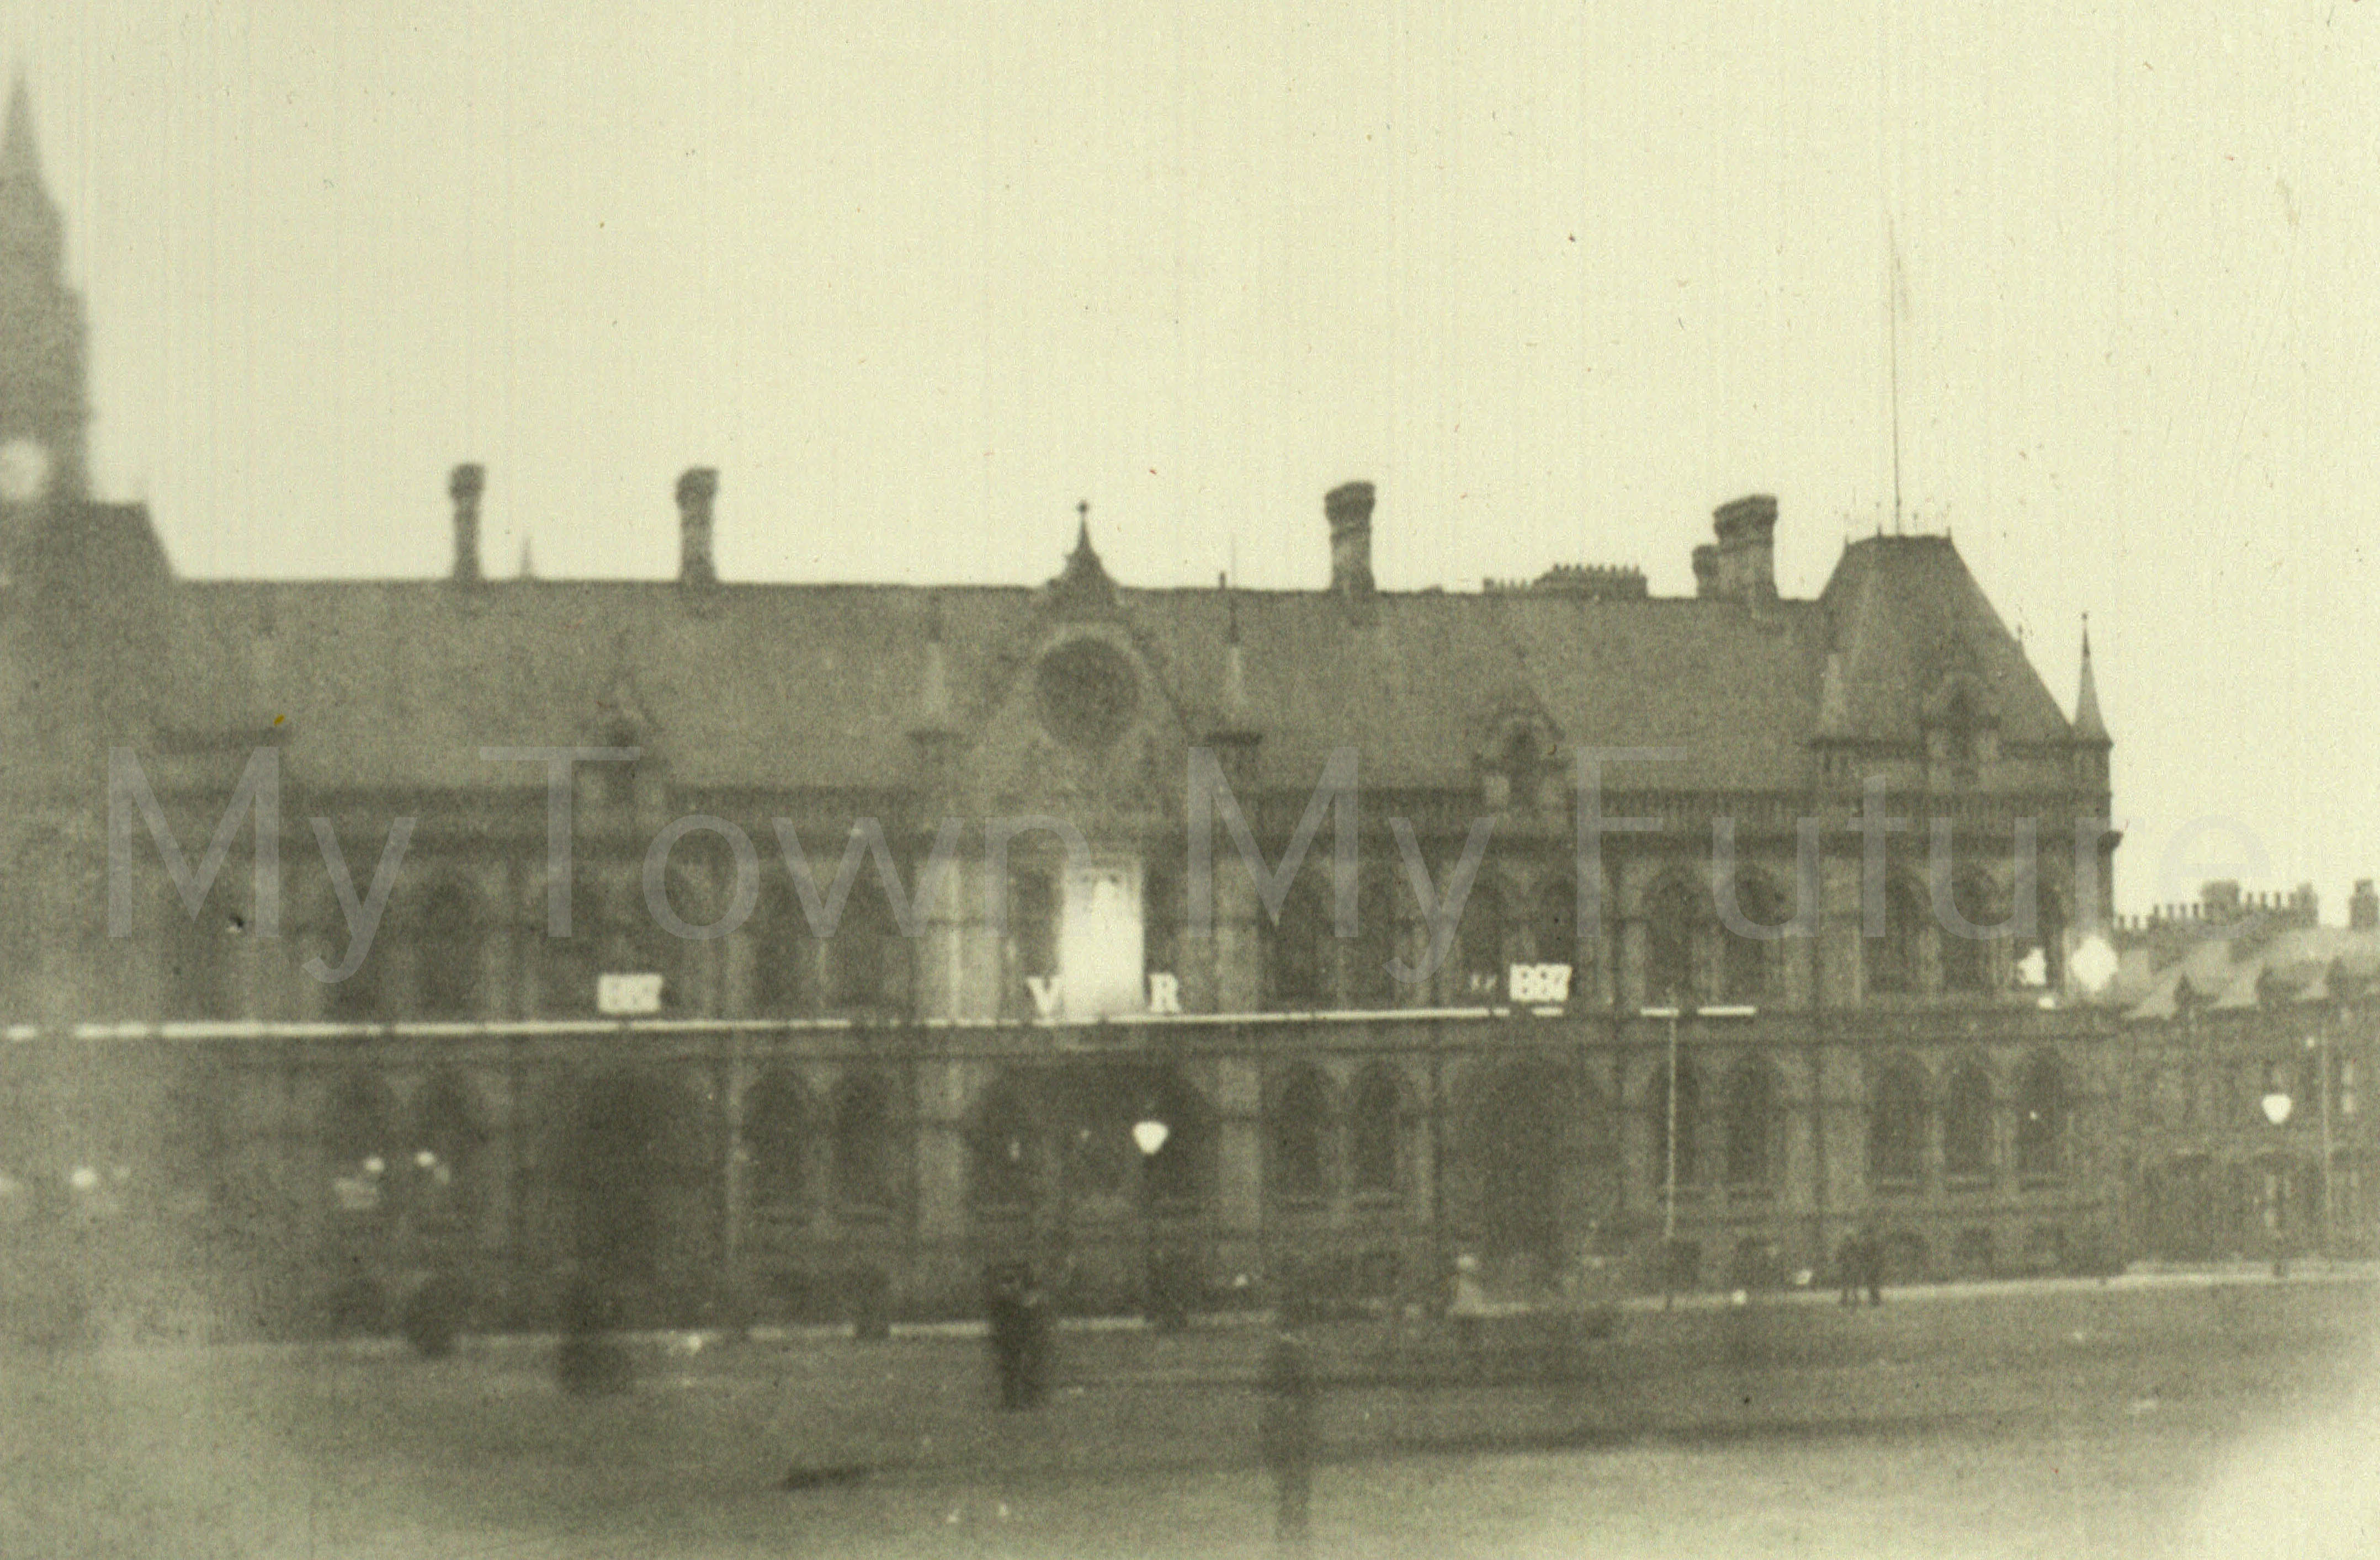 New Town Hall_1887- Earliest Photograph of the New Town Hall found so far